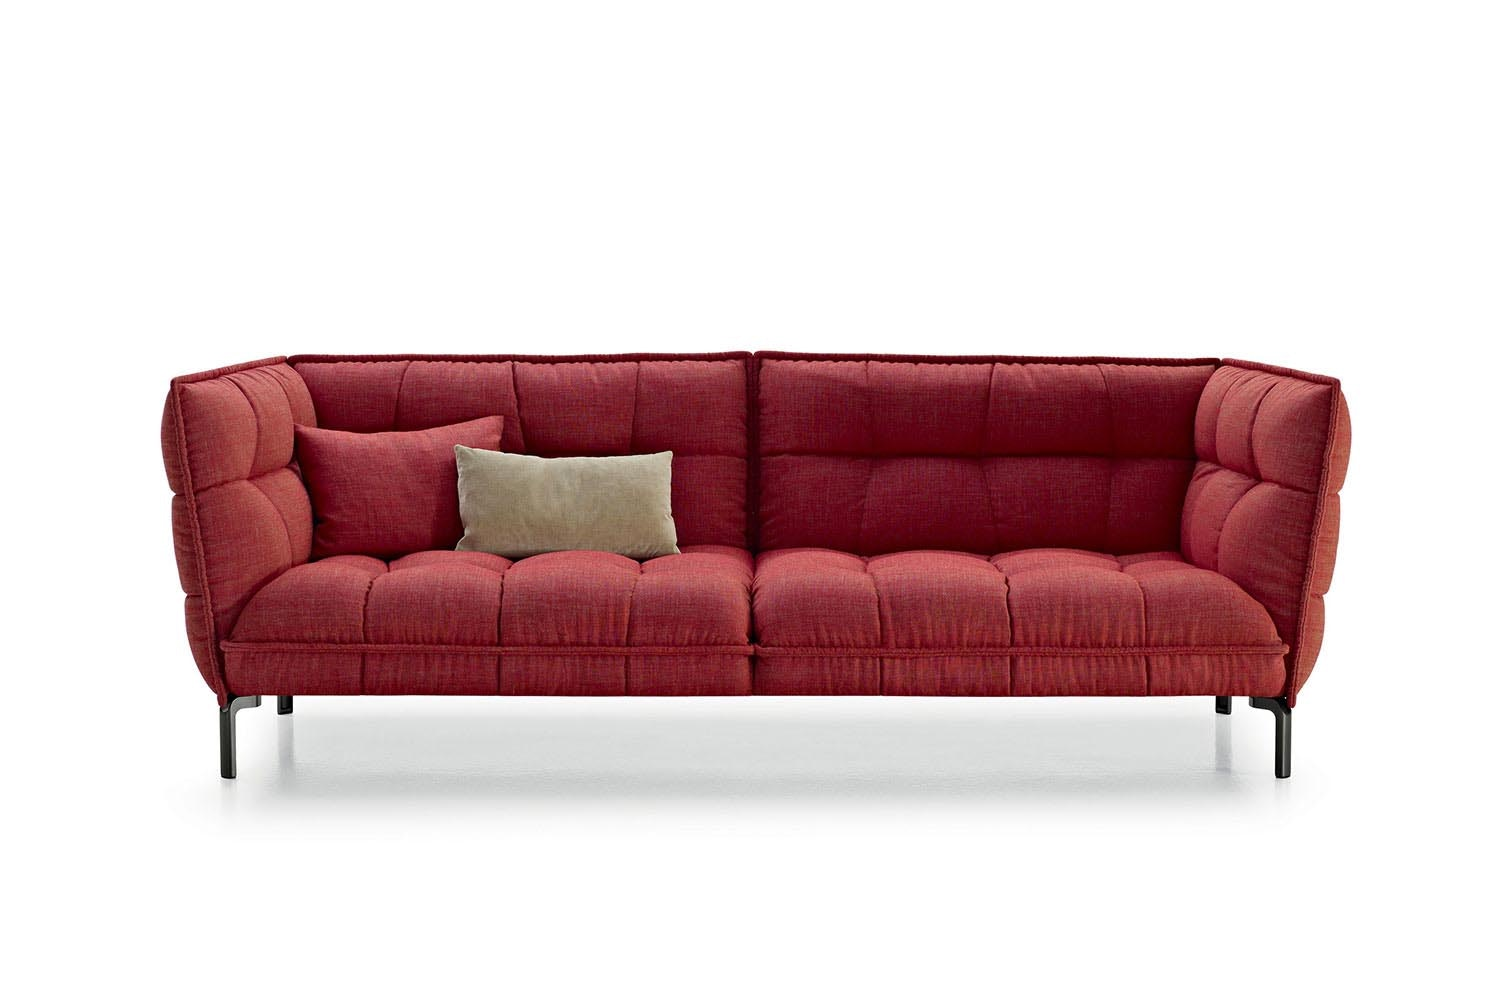 Husk-Sofa by Patricia Urquiola for B&B Italia